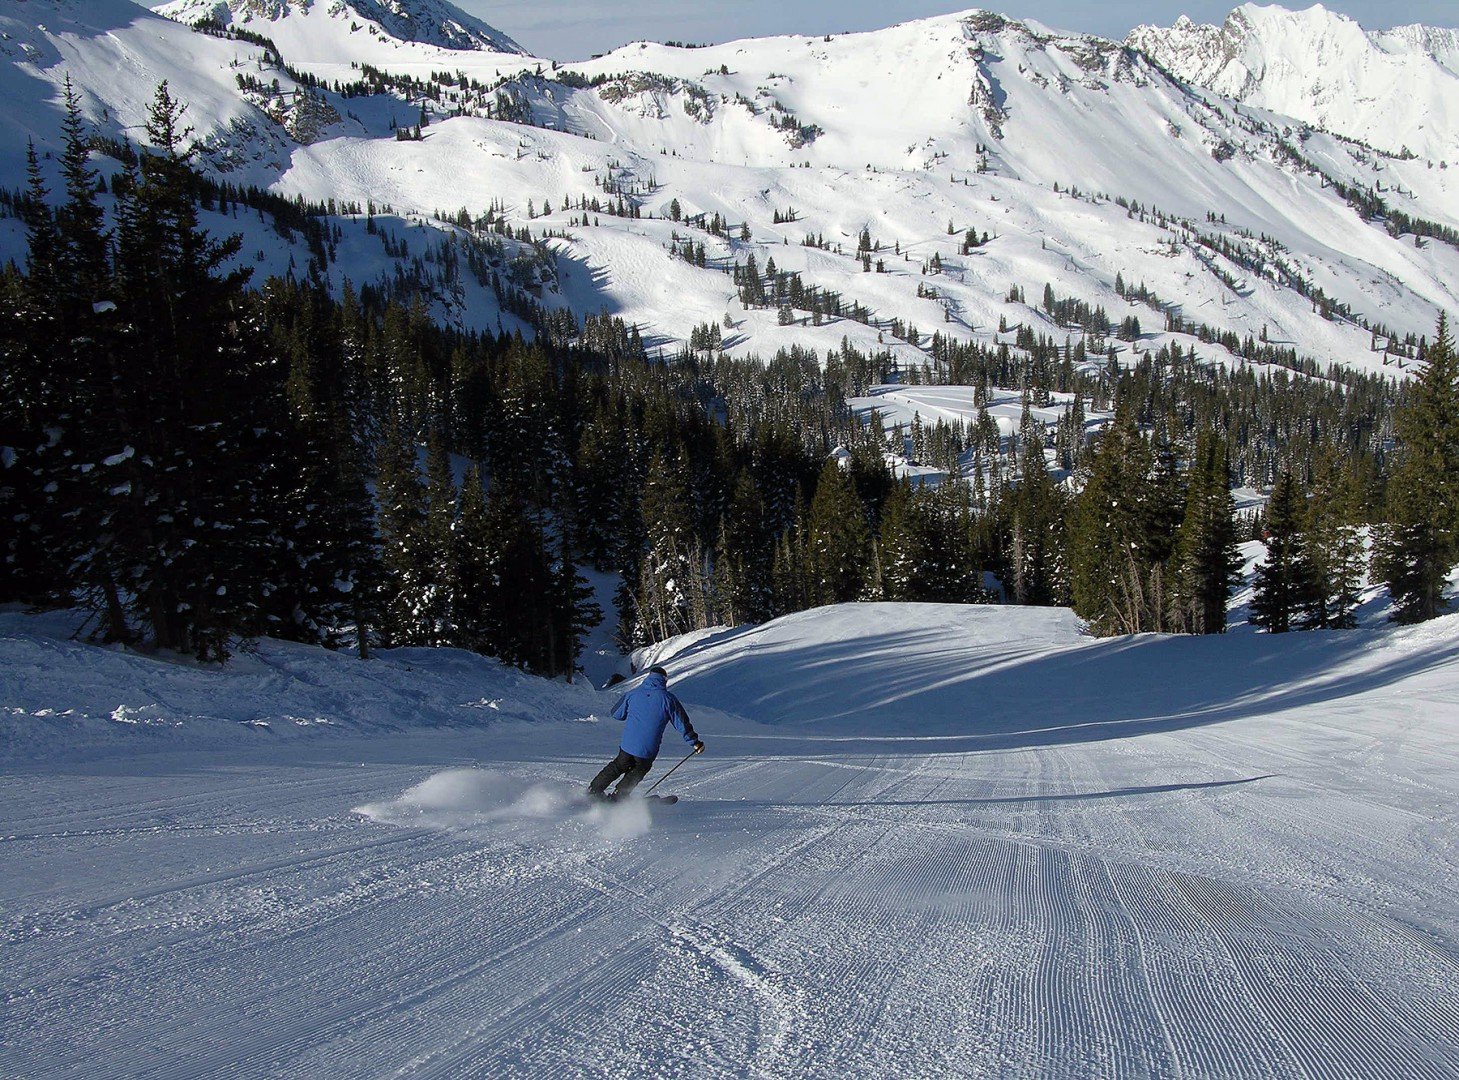 Skiers-only on freshly groomed slopes